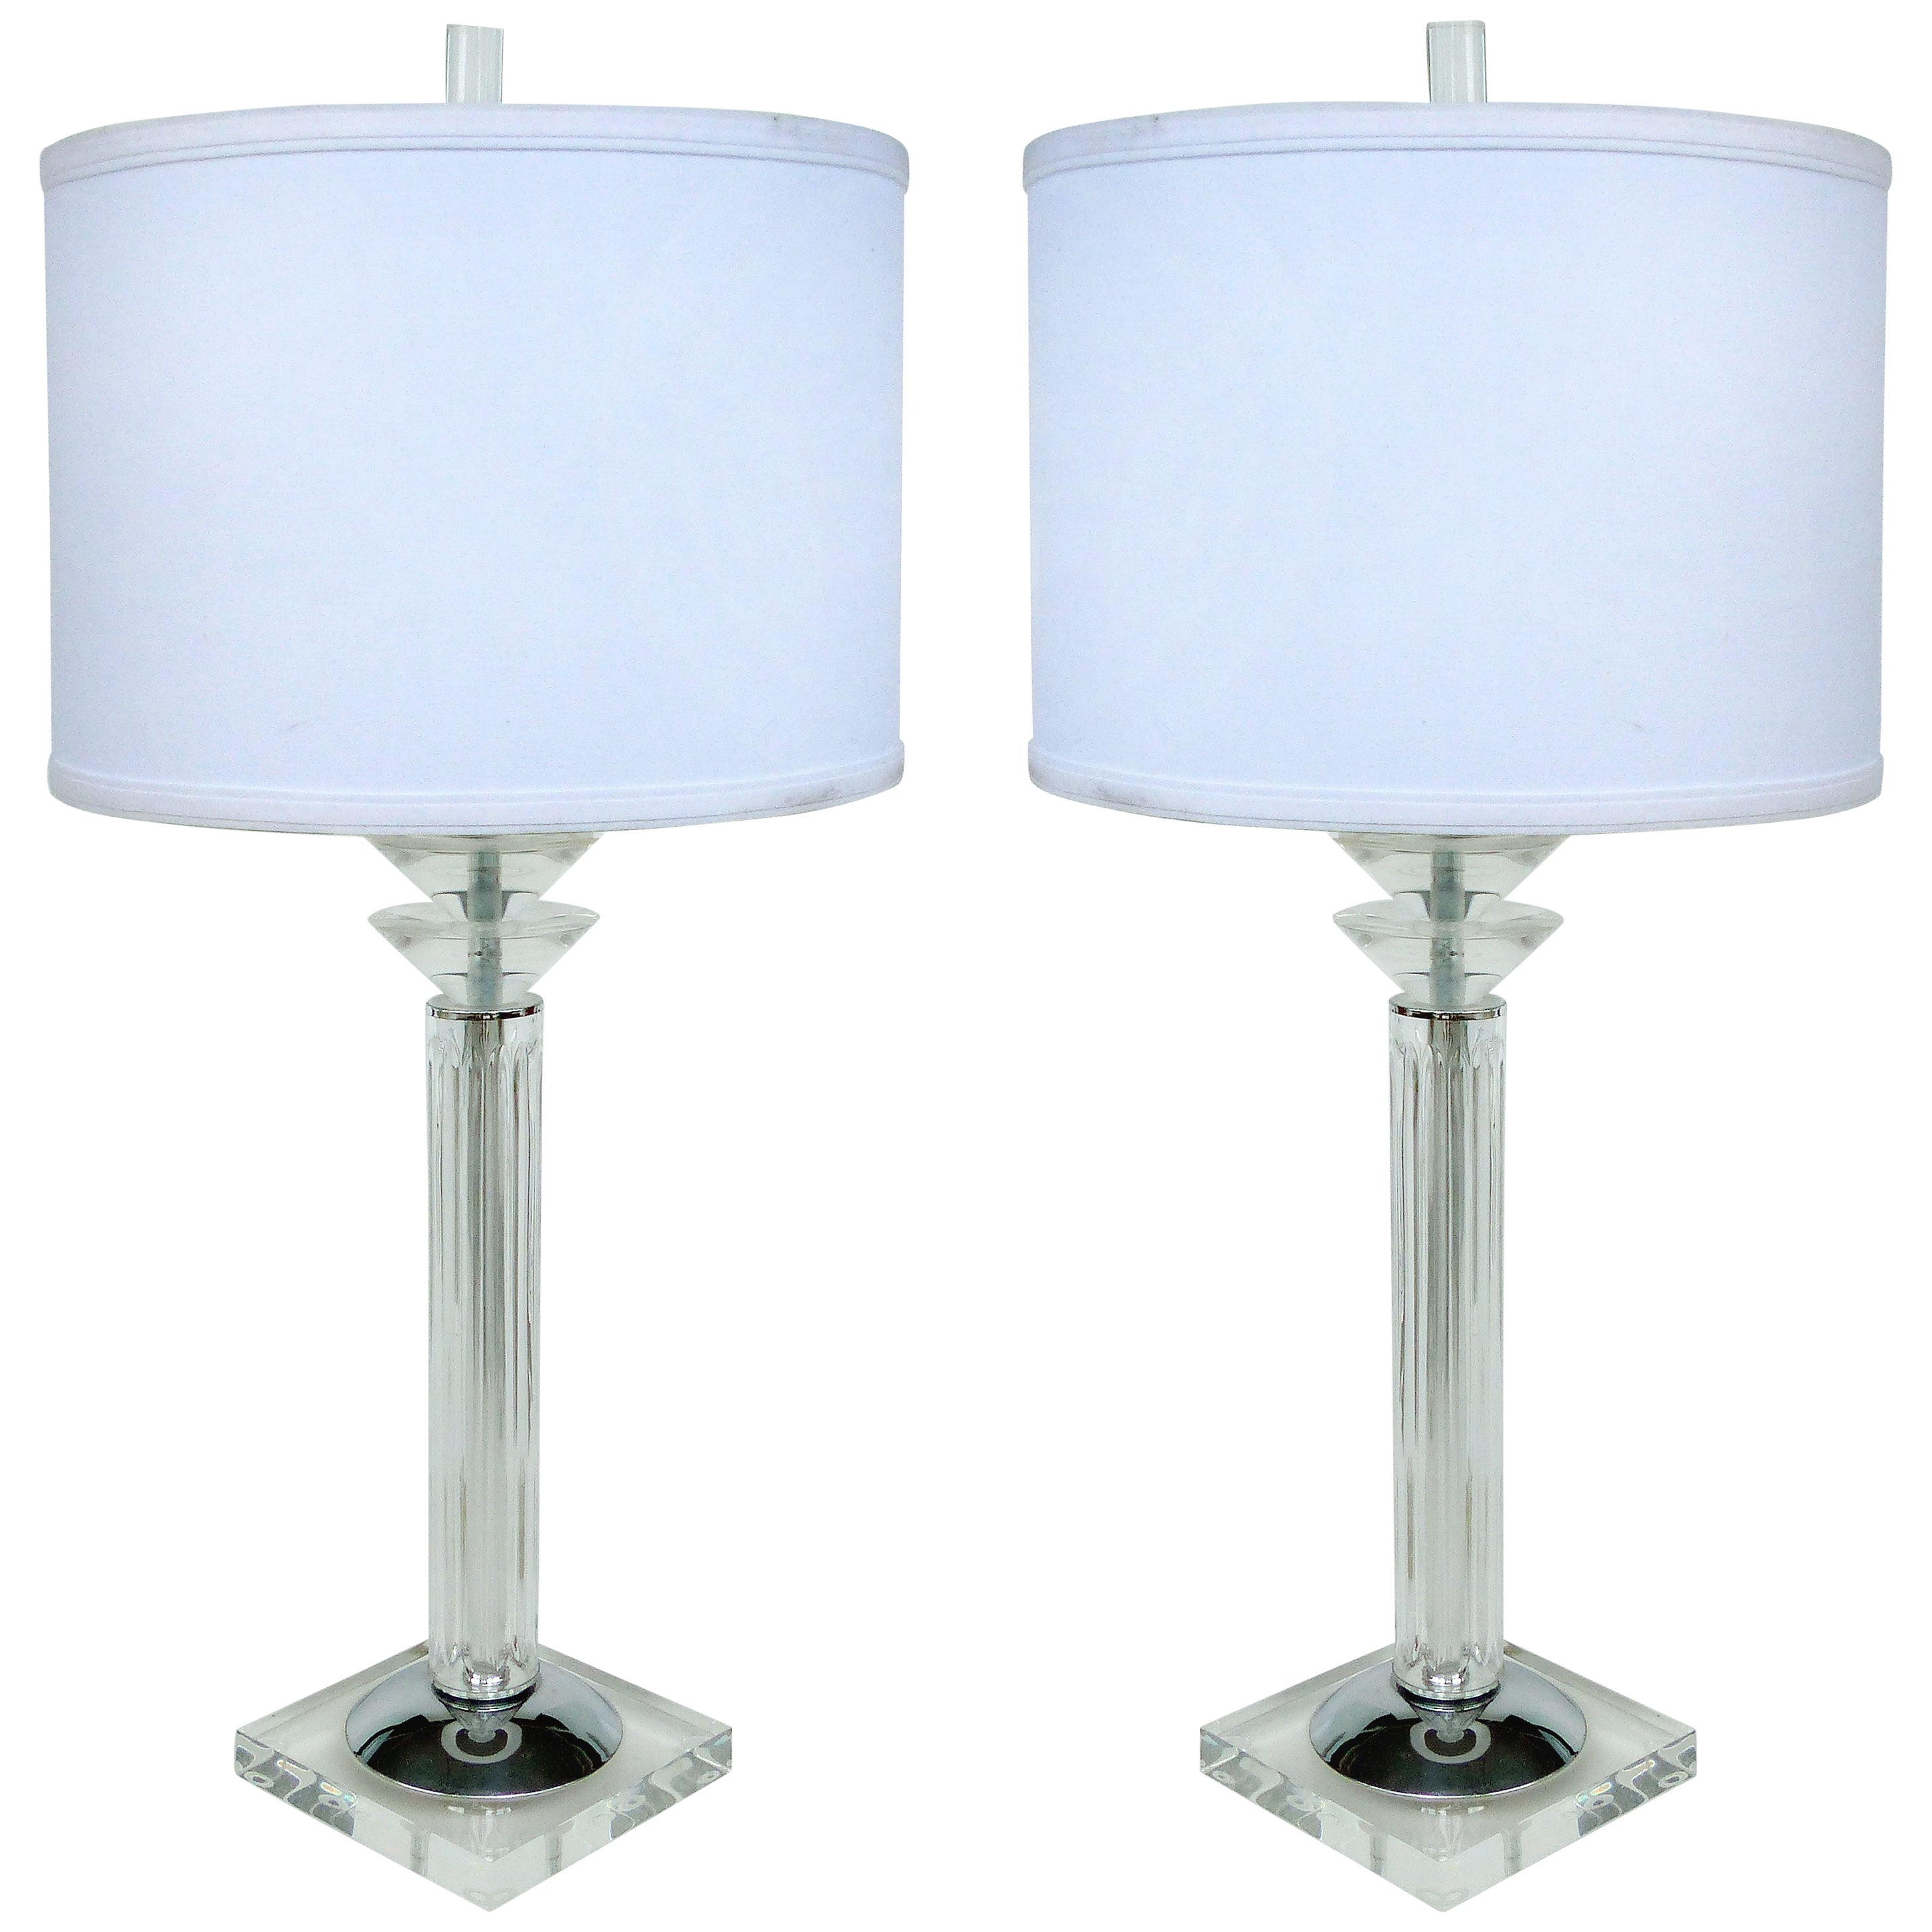 Bauer Lamp Company Lucite, Chrome and Glass Table Lamps, 1993